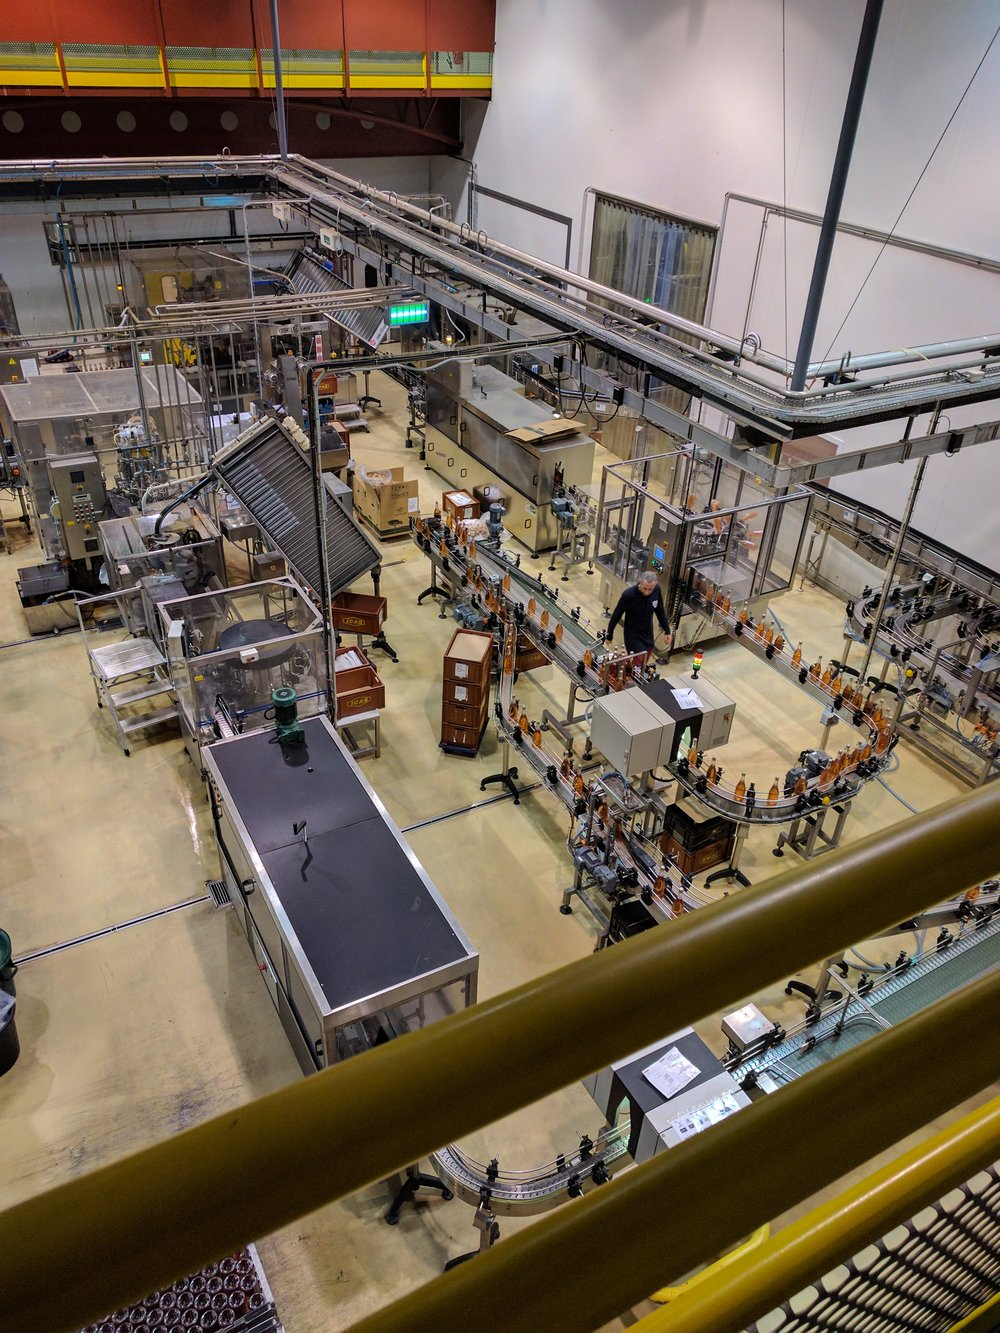 Veuve Ambal's bottling facility